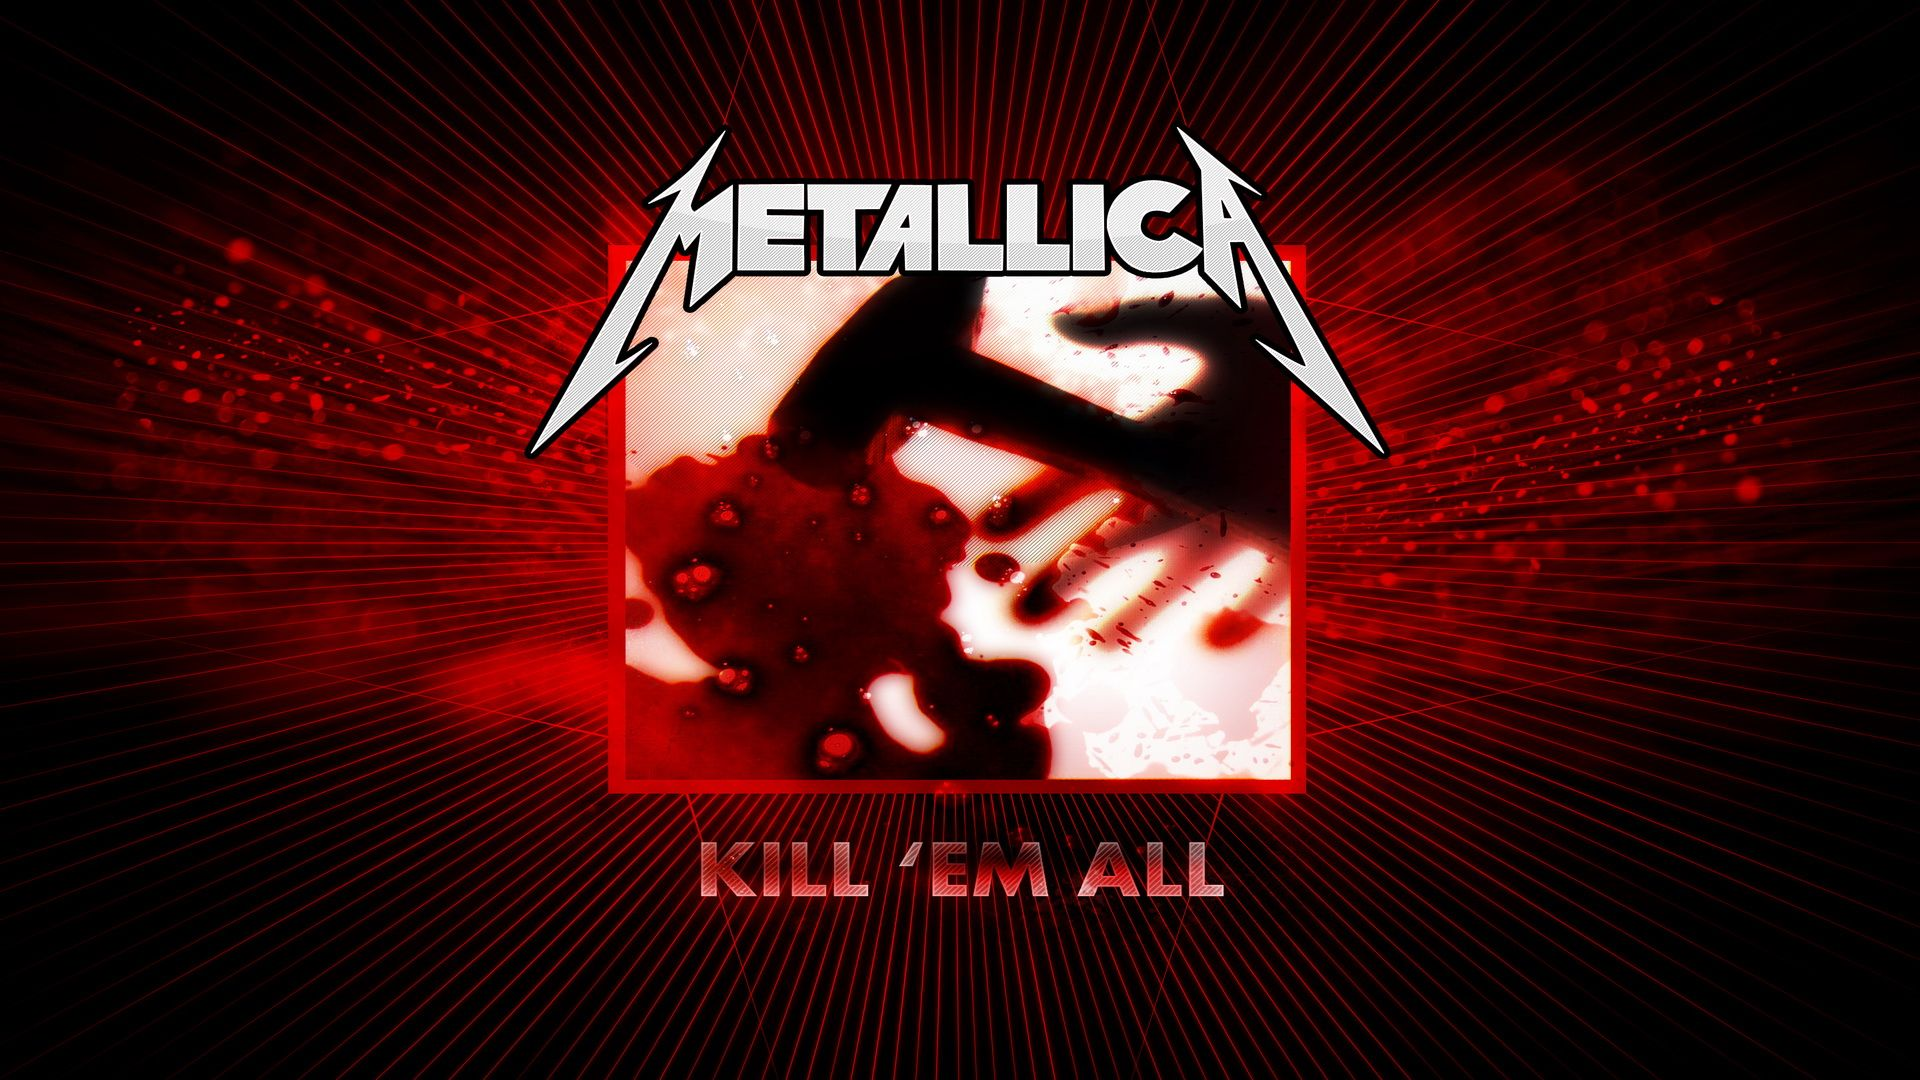 metallica Metallica Wallpapers 7 1920x1080 Pinterest